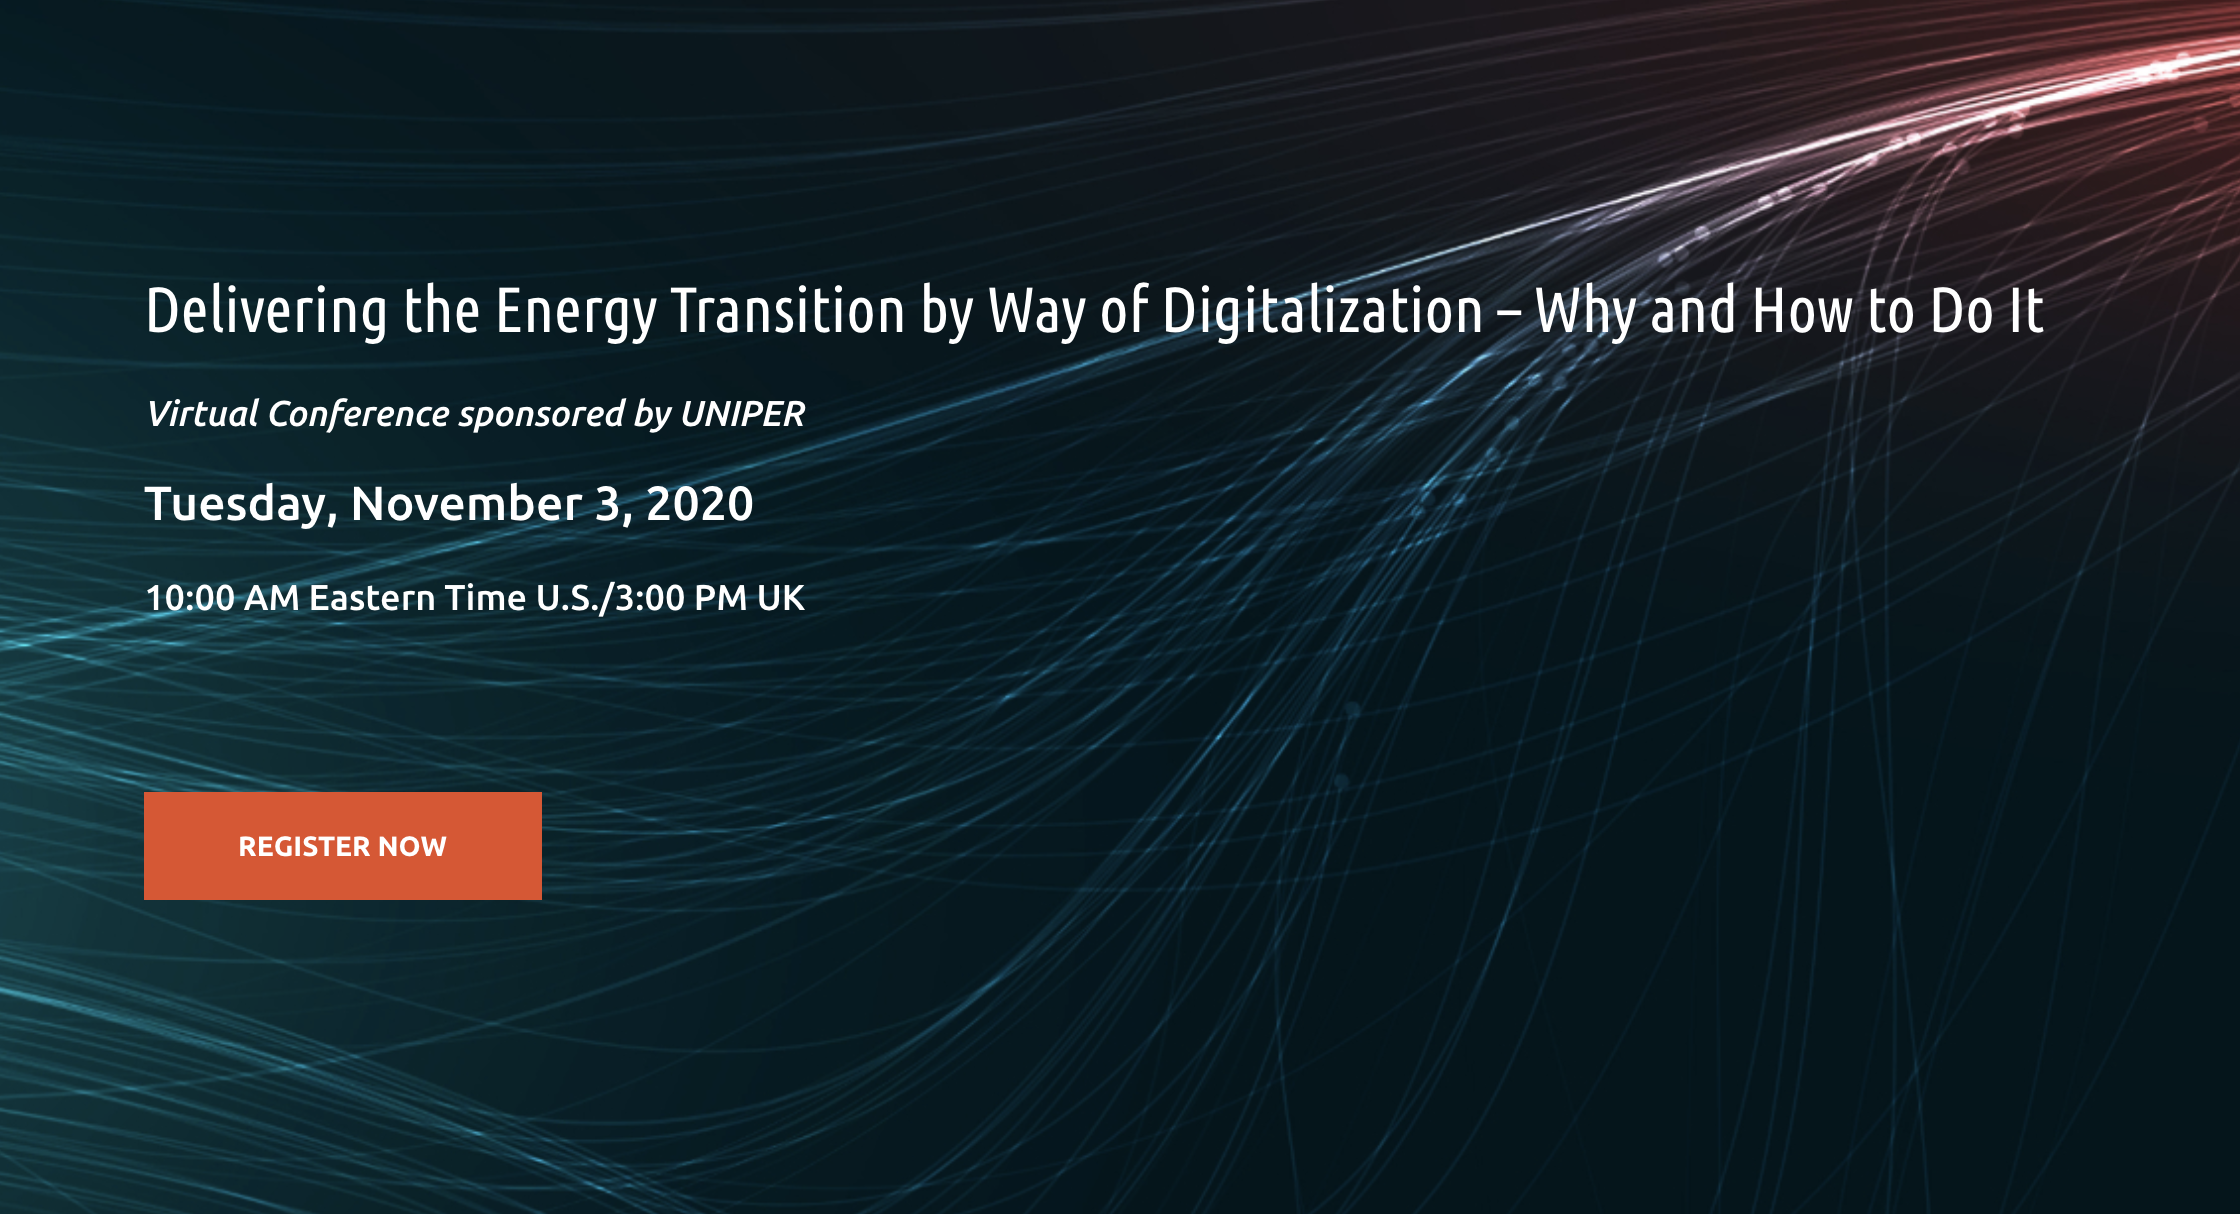 Delivering the Energy Transition by Way of Digitalization – Why and How to Do It